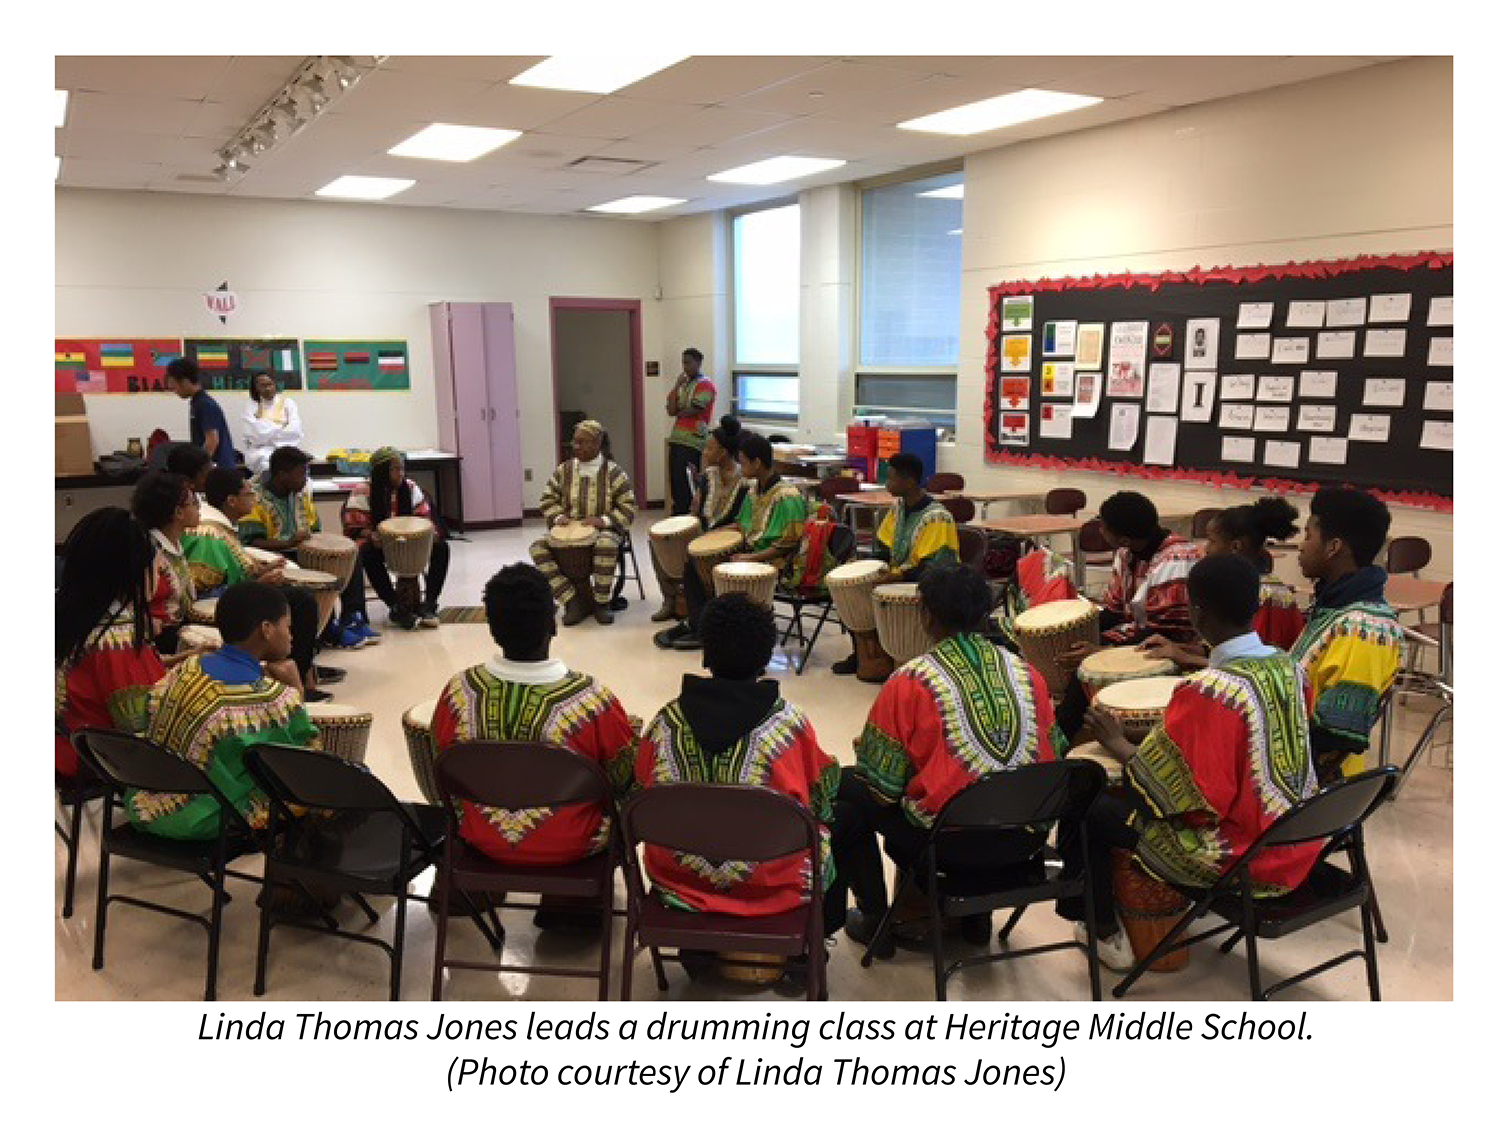 Linda Thomas Jones leads a drumming class at Heritage Middle School. Photo courtesy of Linda Thomas Jones.